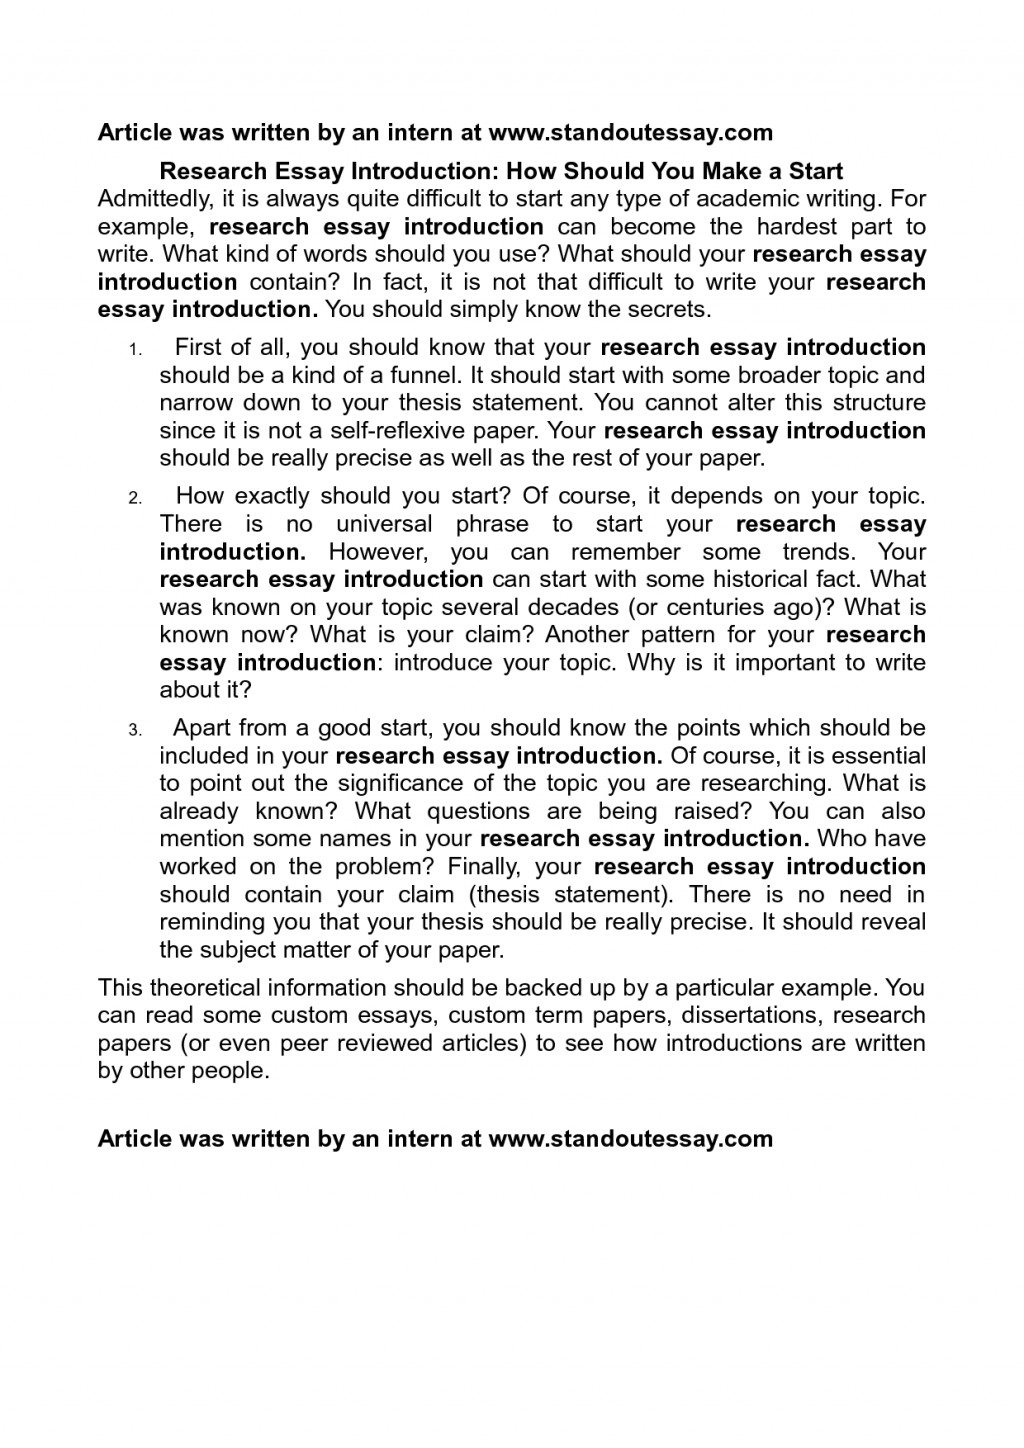 015 How To Start Of An Essay Y841bdcego Breathtaking Argumentative Example About Yourself For Scholarship Analysis On A Book Large